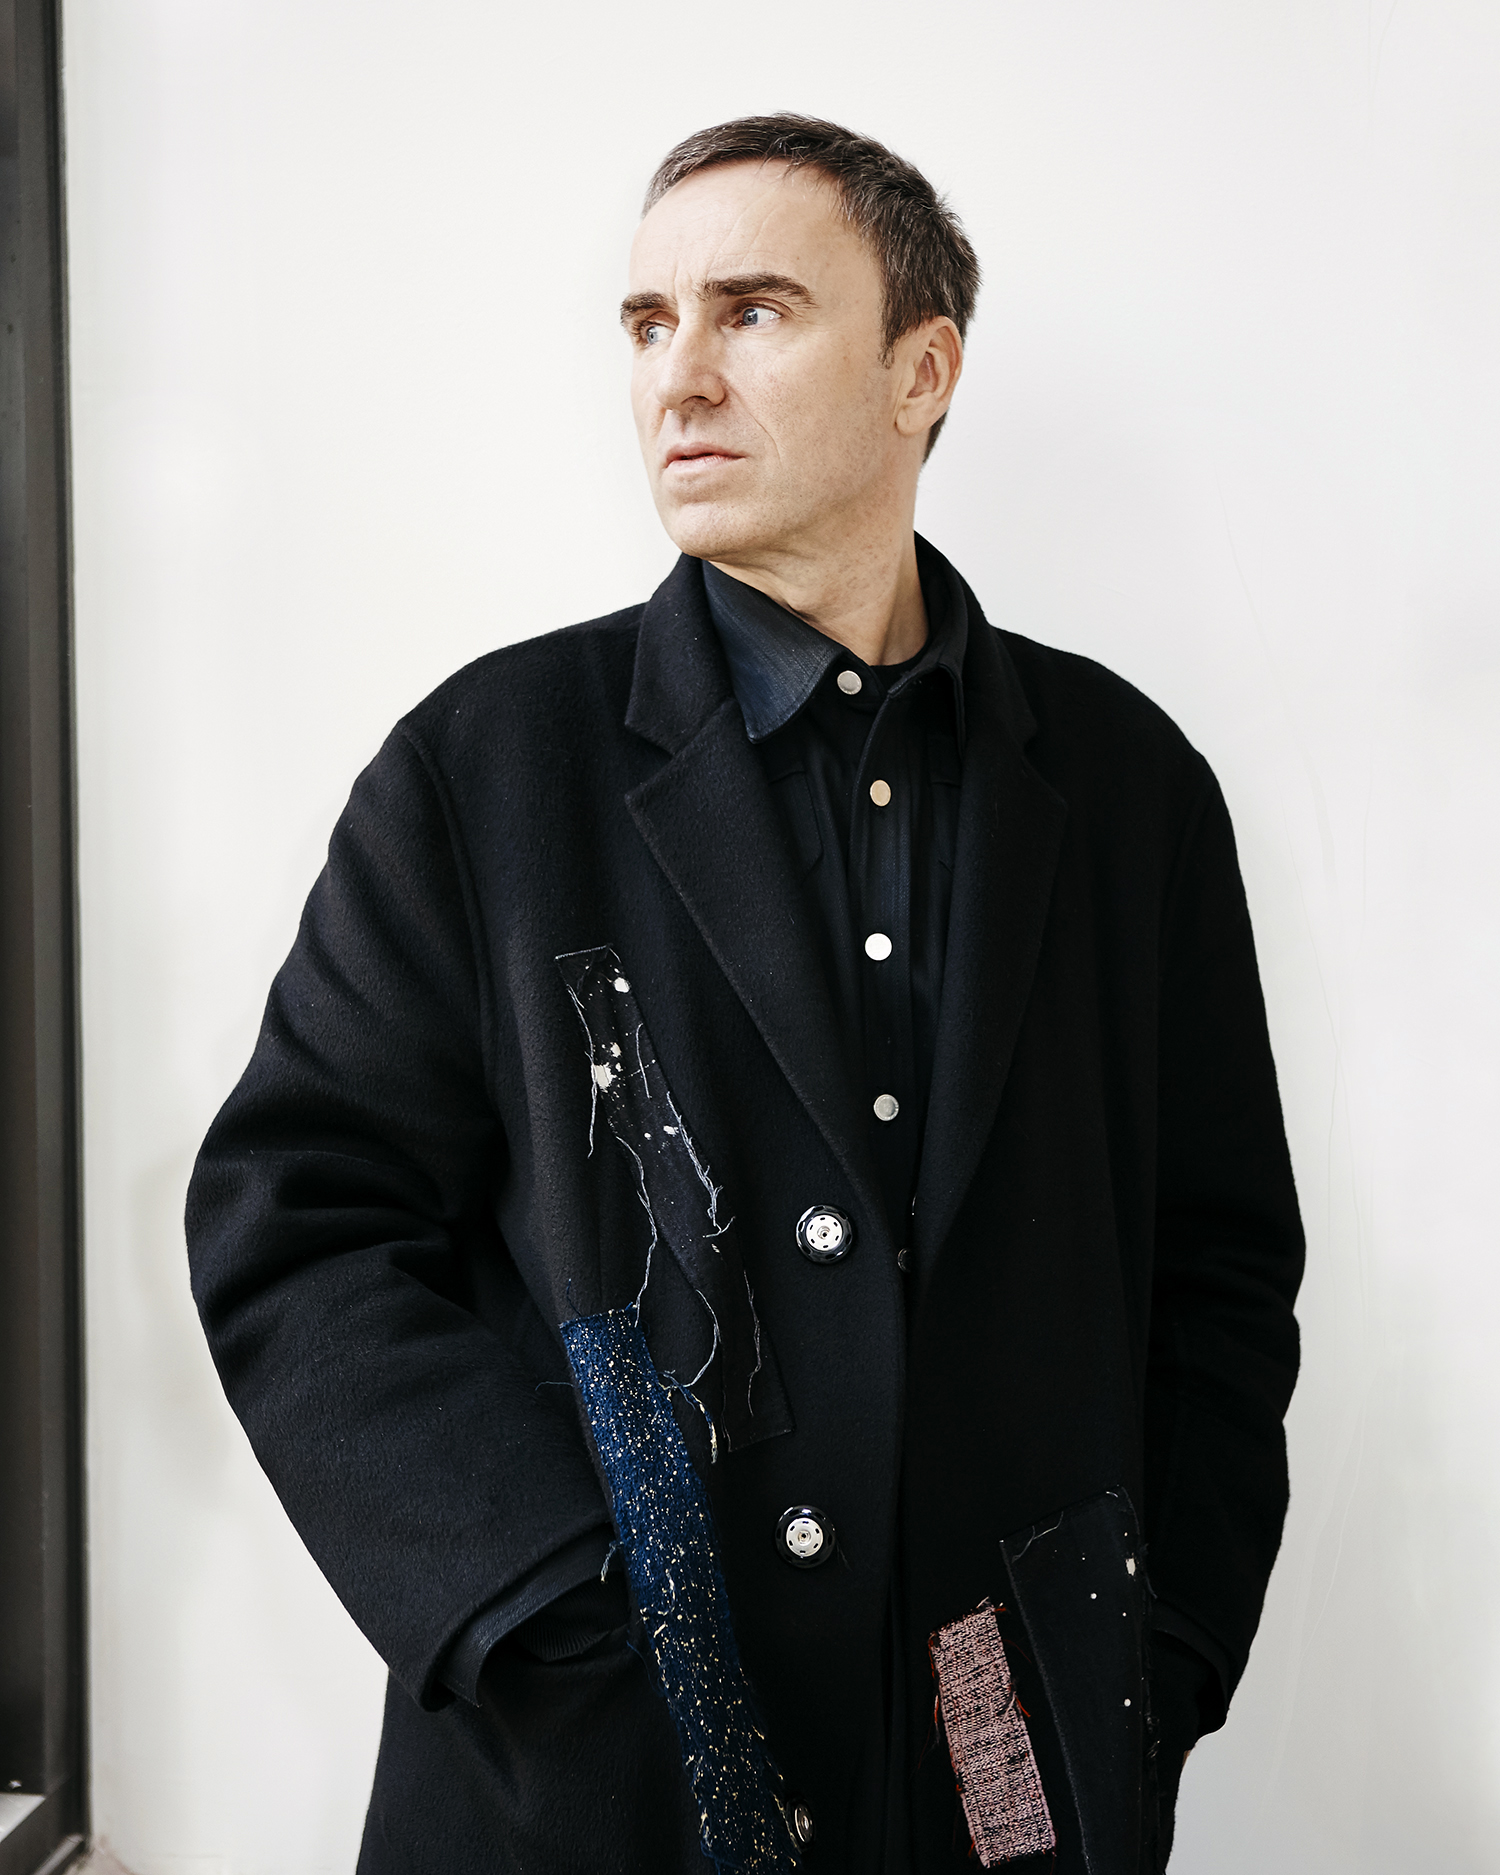 Raf-Simons-by-Weston-Wells.jpg